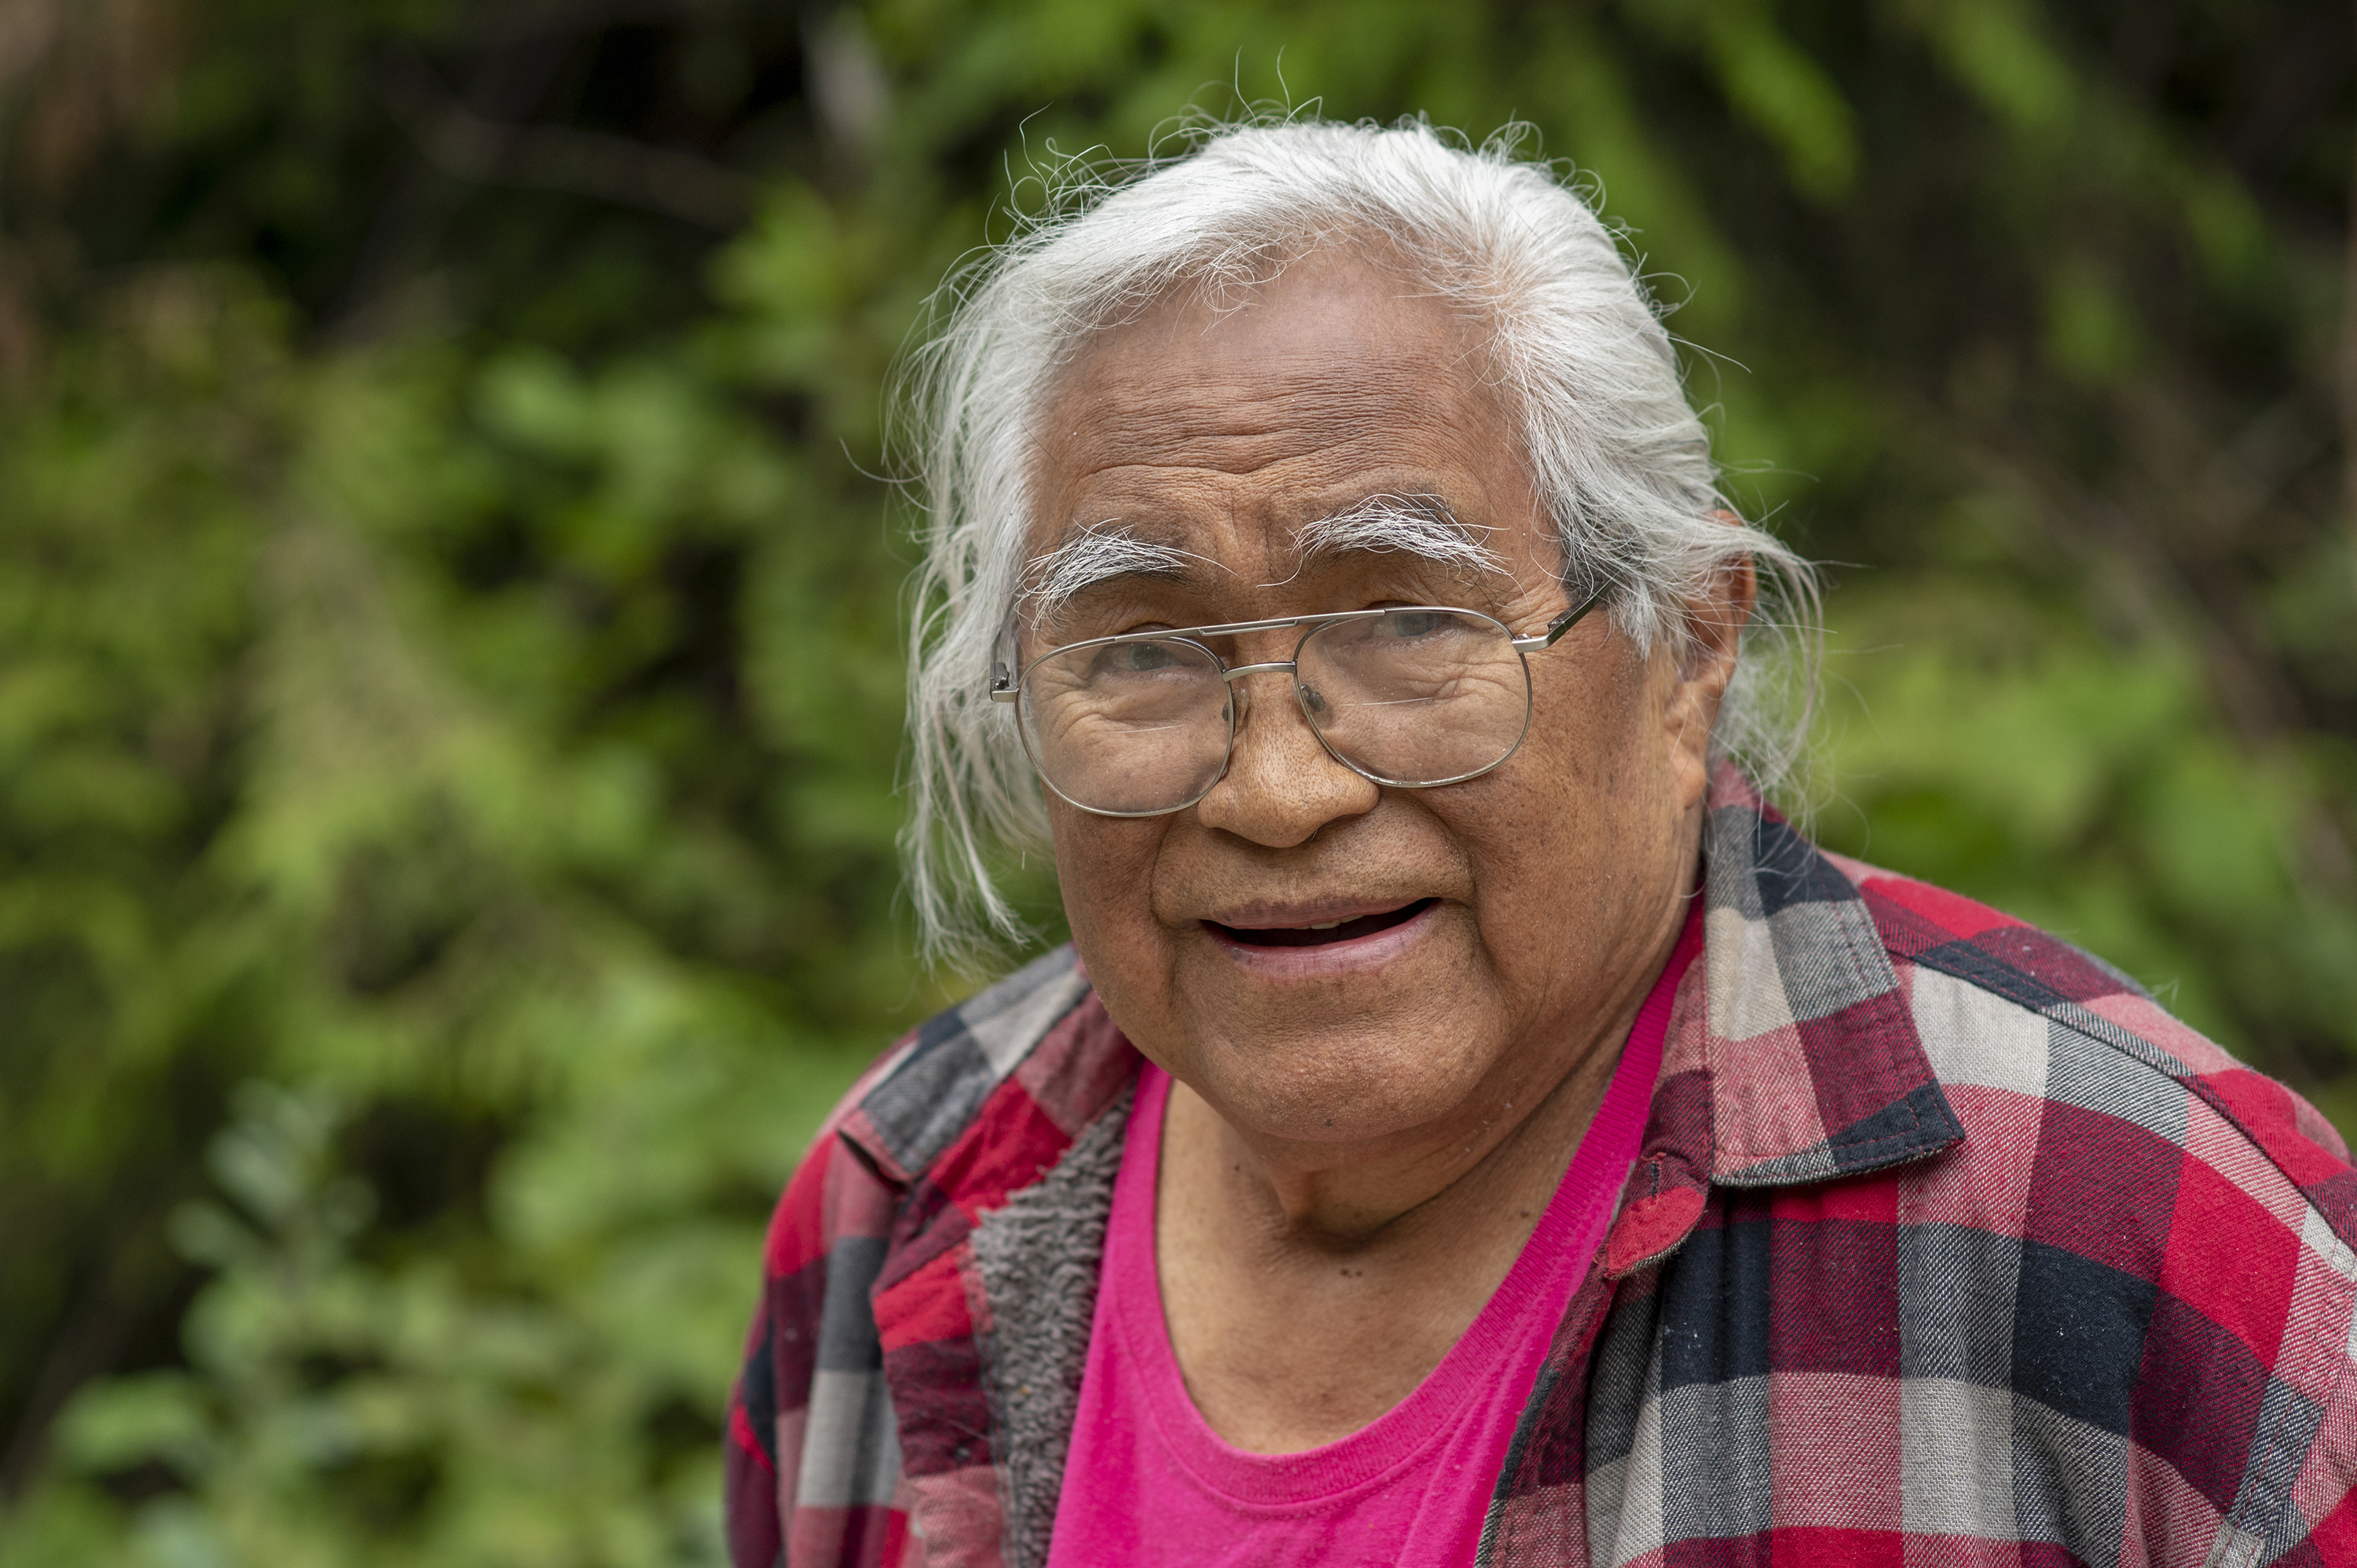 Bill Jones, an elder with the Pacheedaht First Nation, whose territory includes Fairy Creek, has become a figurehead of the protest movement and the symbolic leader of the Rainforest Flying Squad. (Kieran Oudshoorn/CBC)